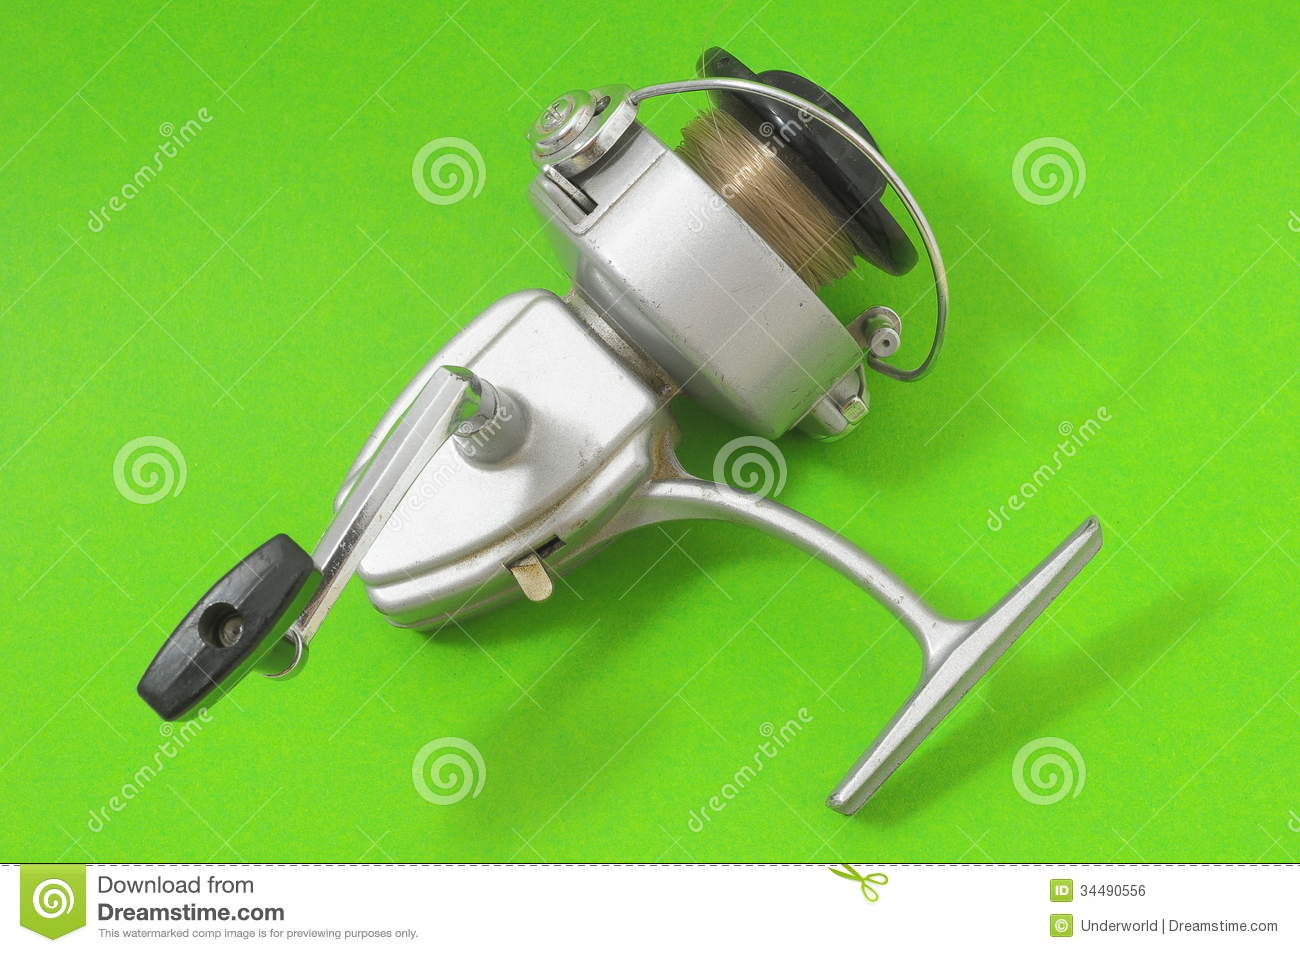 Vintage old fishing reel royalty free stock image image for Old fishing reels